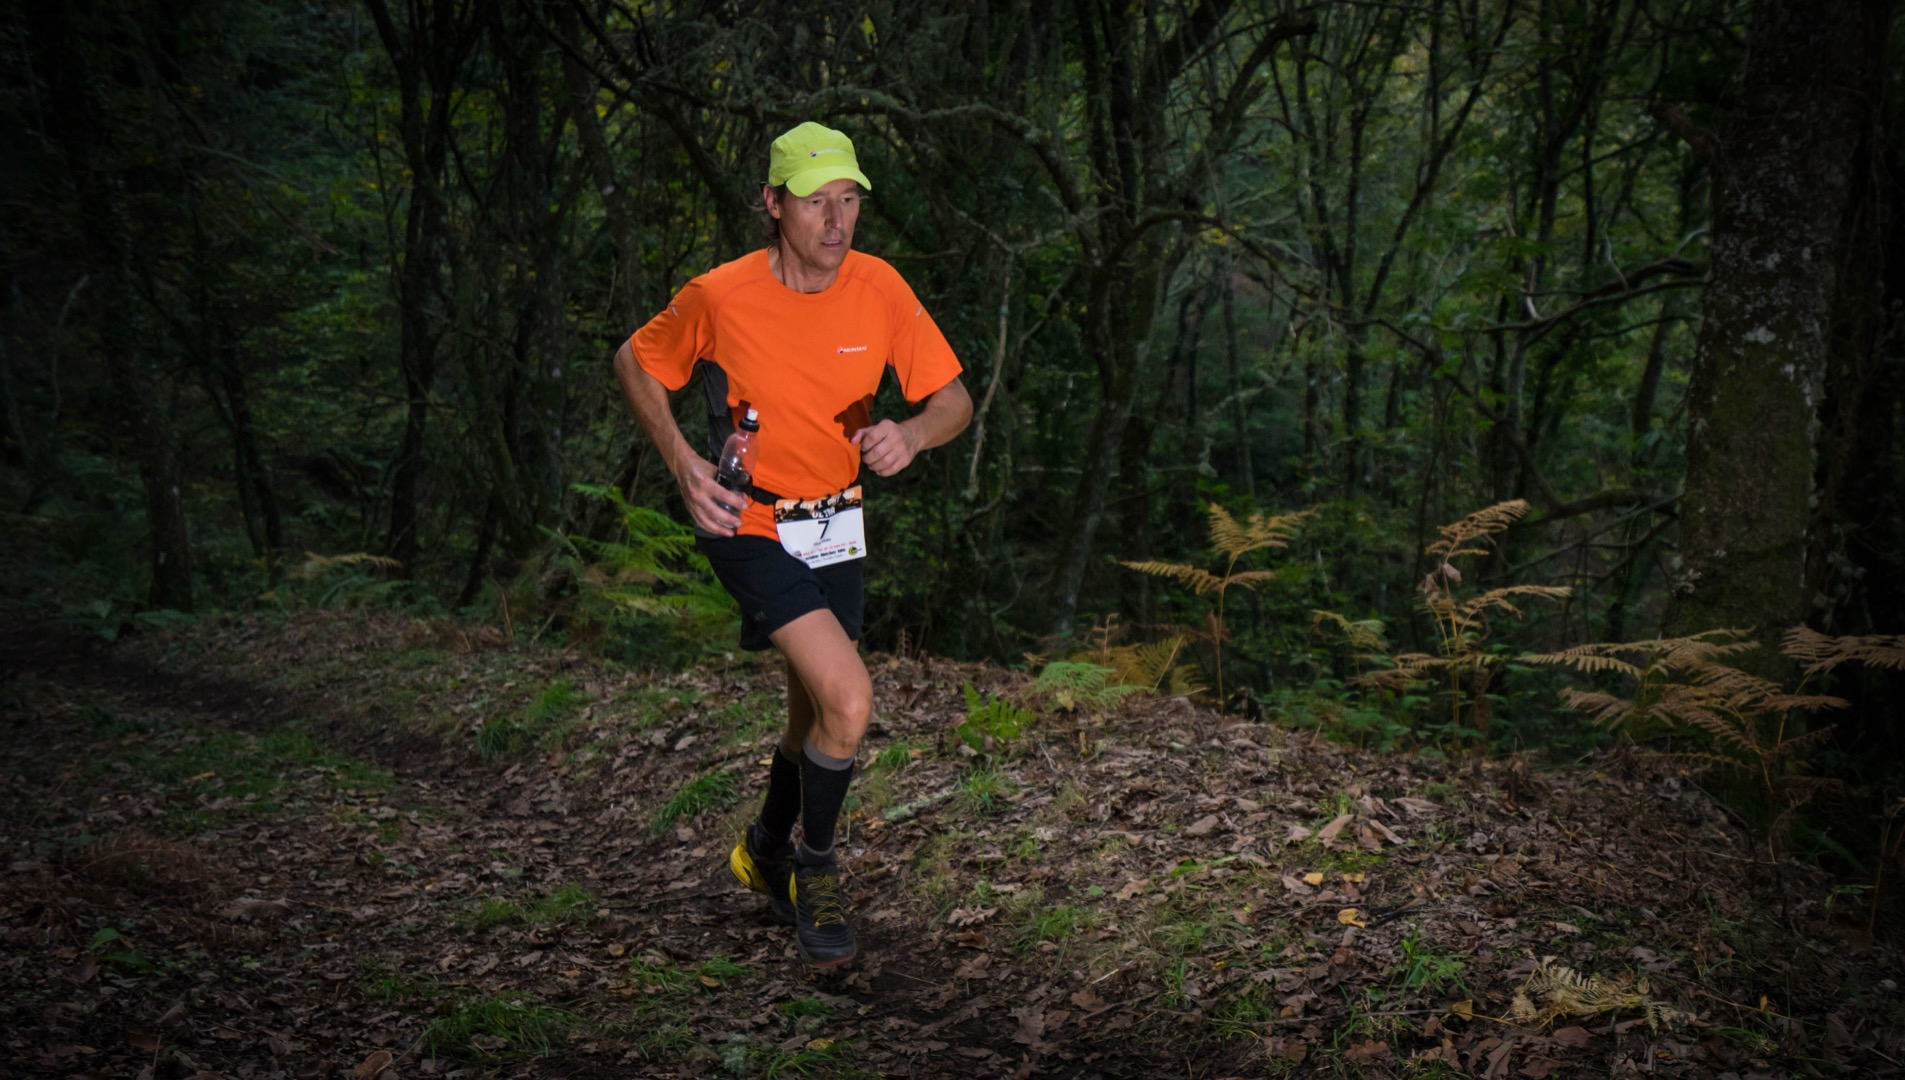 Simon Gfeller vencé en la Spain Backyard Ultra